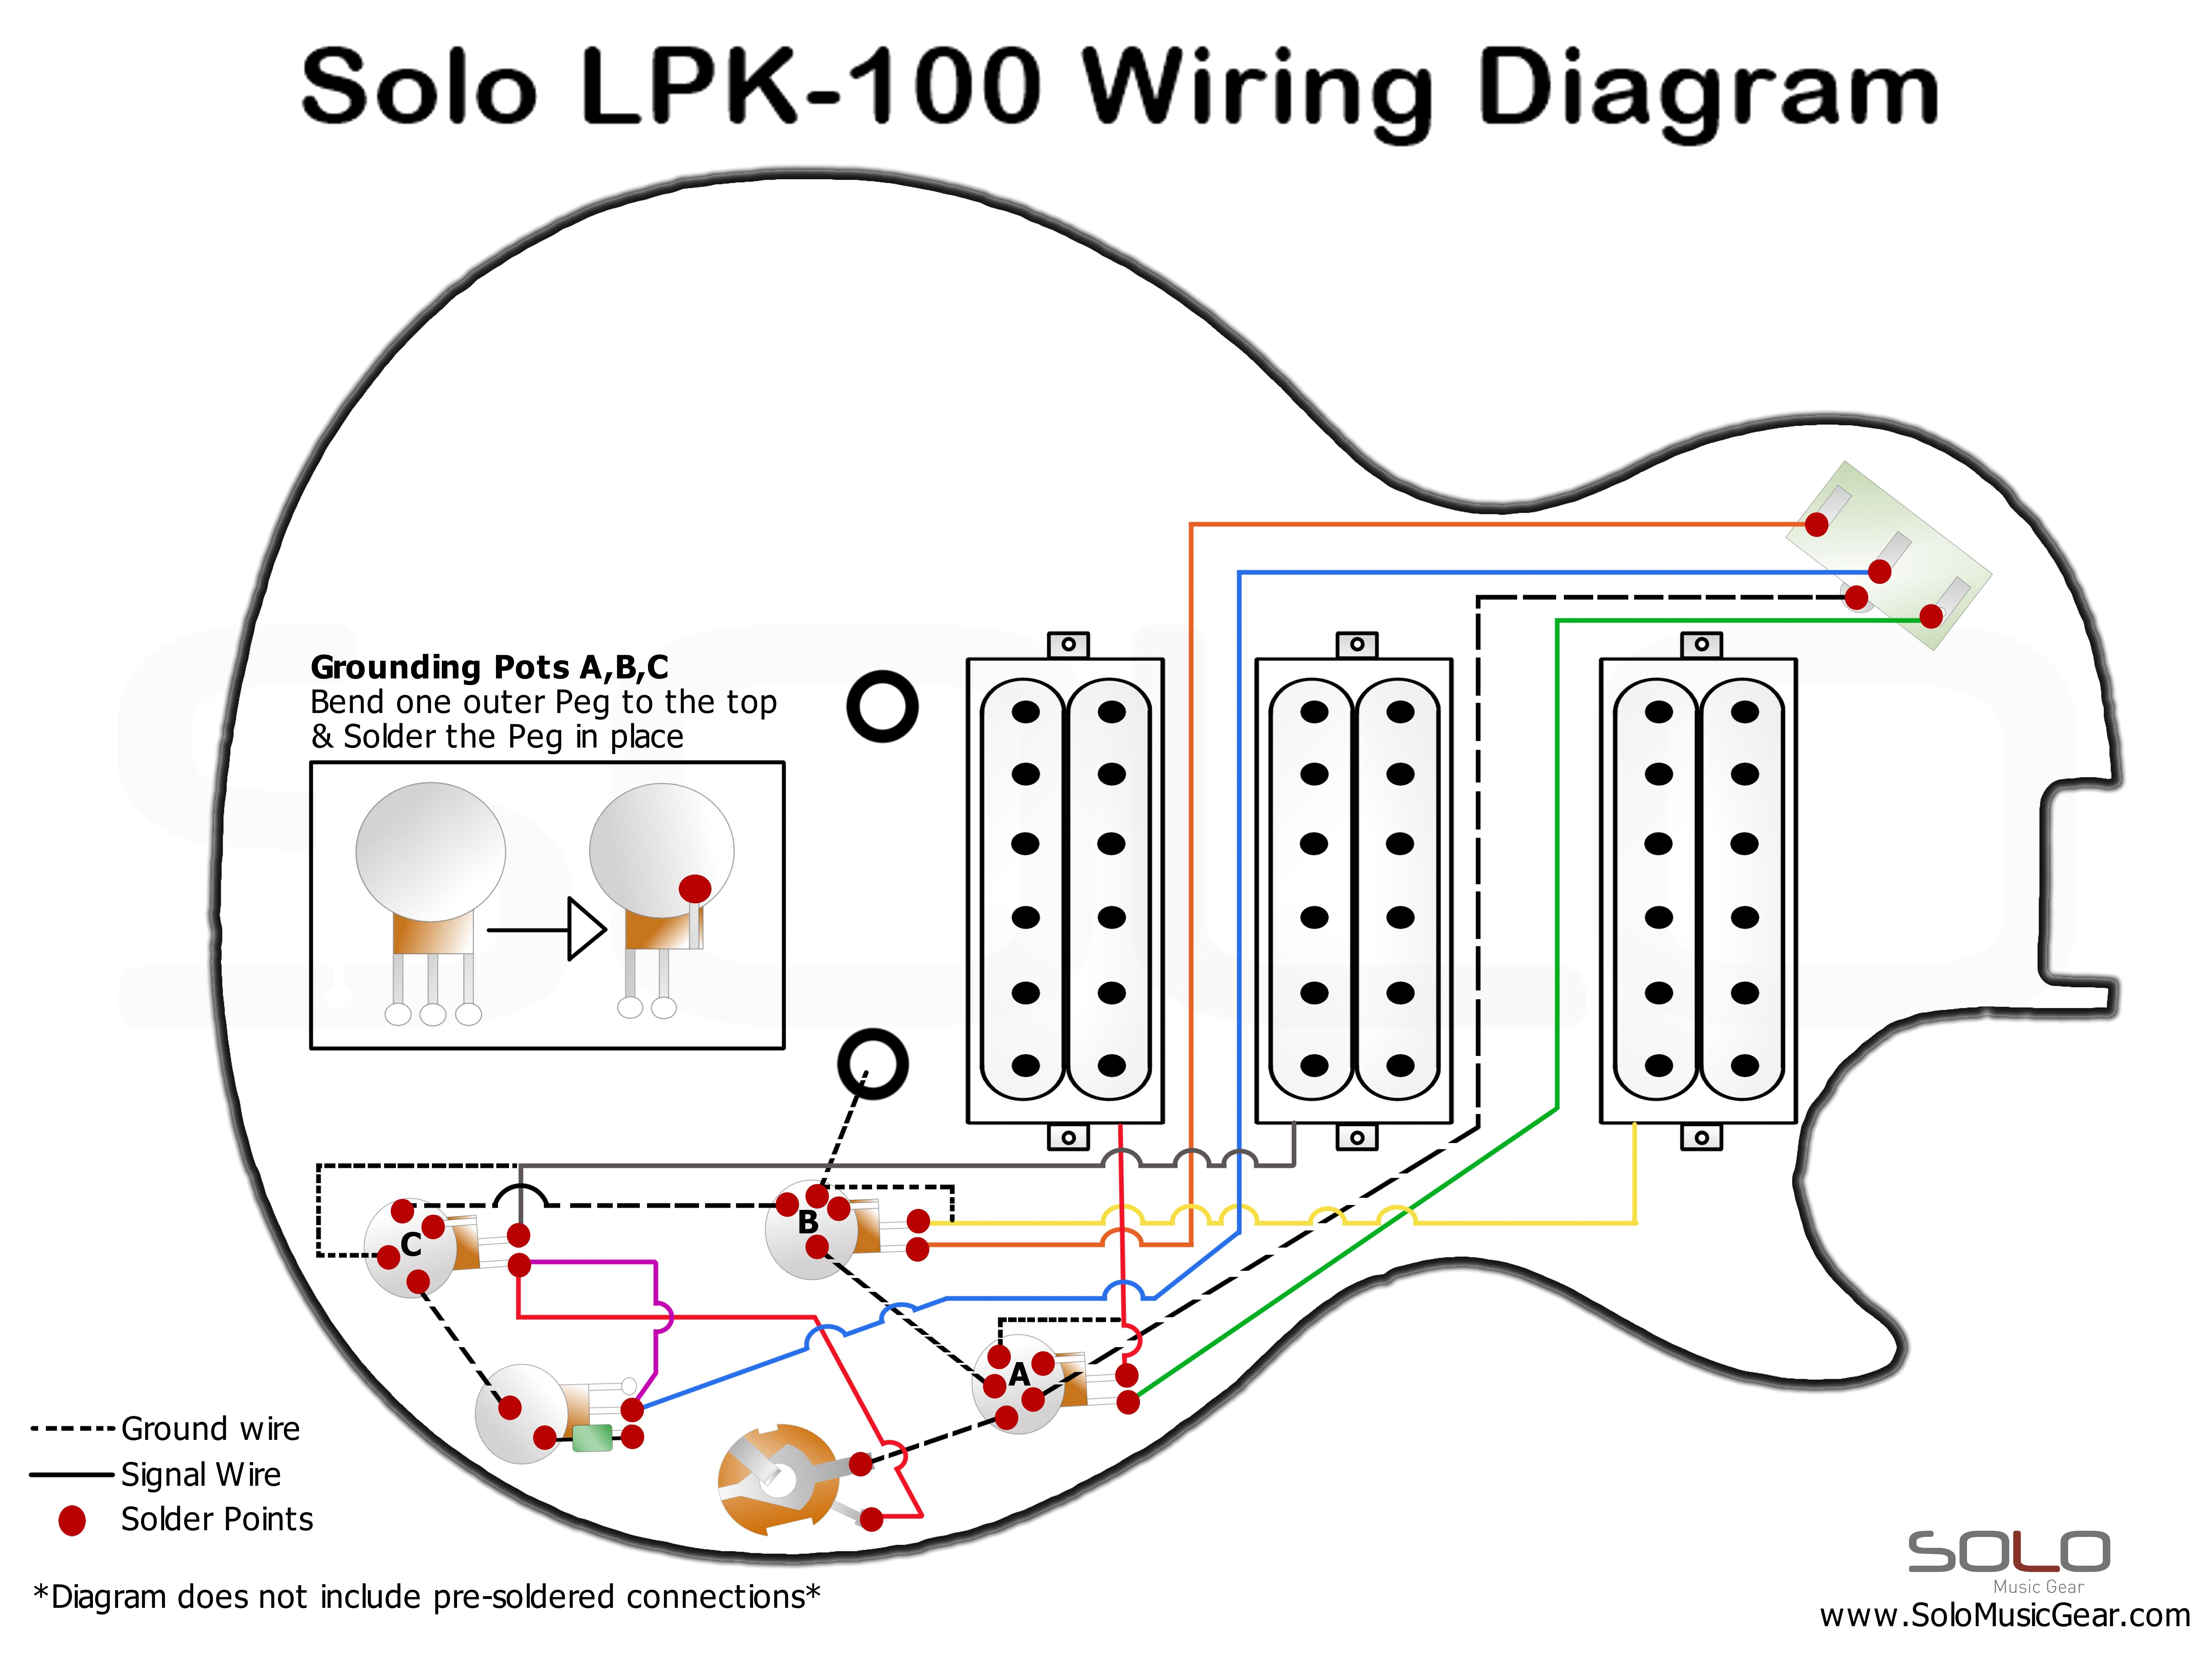 Humbucker Pickup Wiring Diagram from www.solomusicgear.com